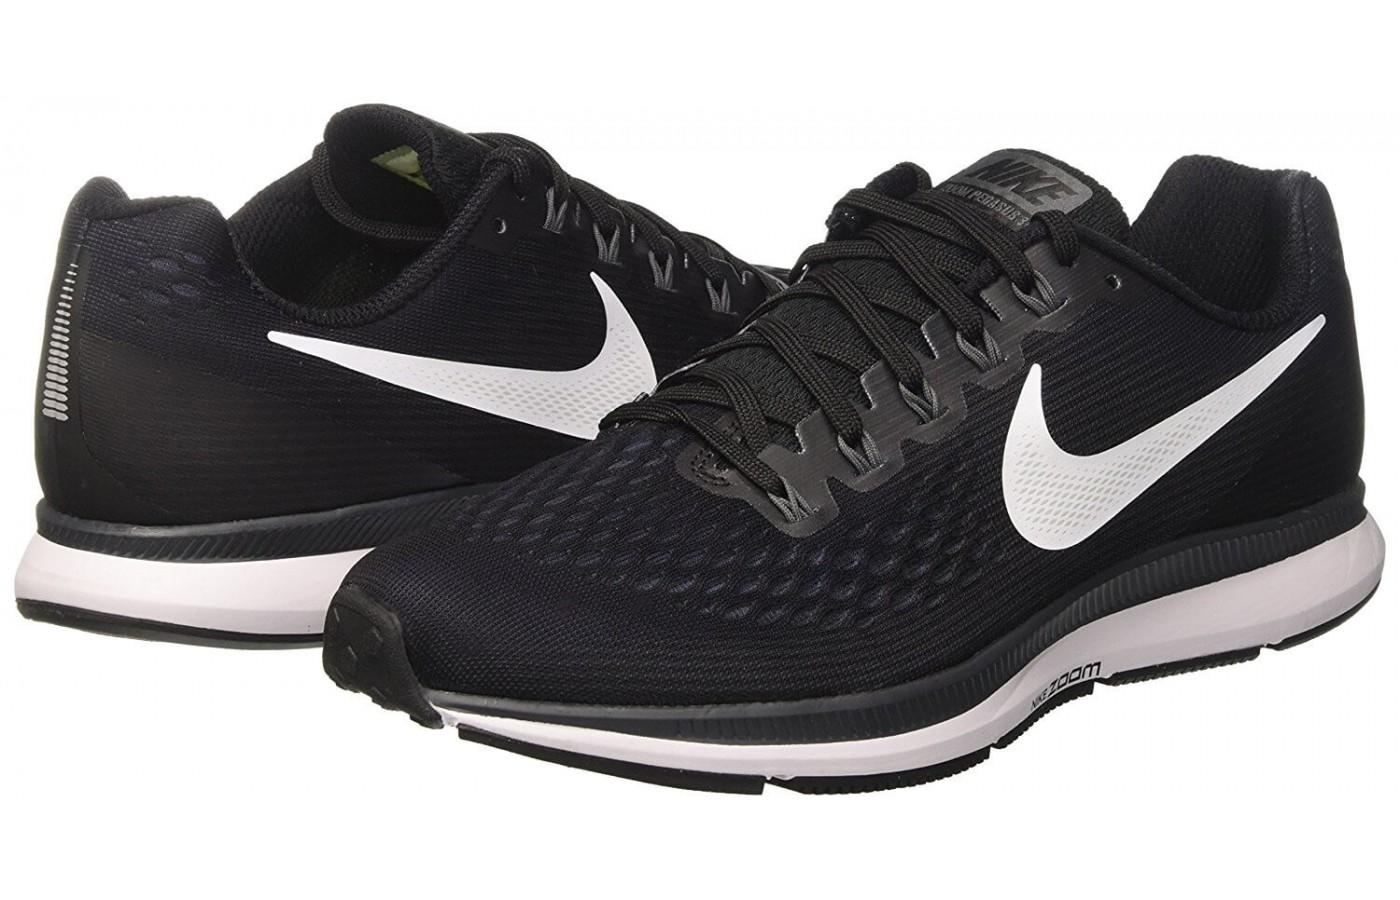 1af196d9e129d ... the Nike Air Zoom Pegasus 34 is a great overall running shoe